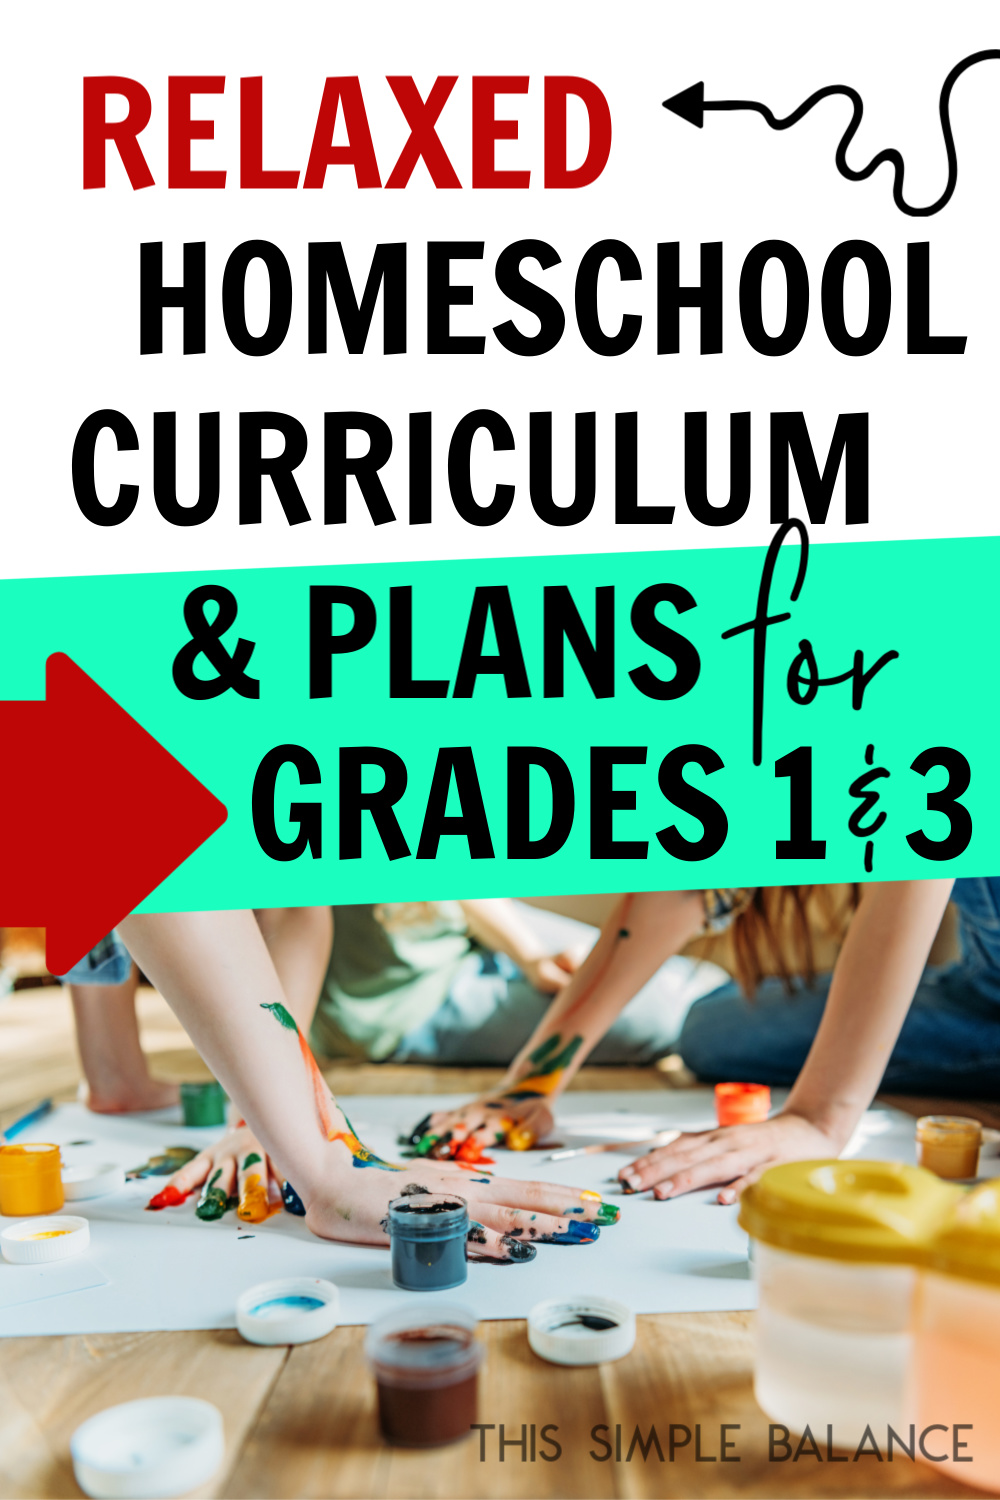 Third Grade and First Grade Relaxed Homeschool Plans & Curriculum